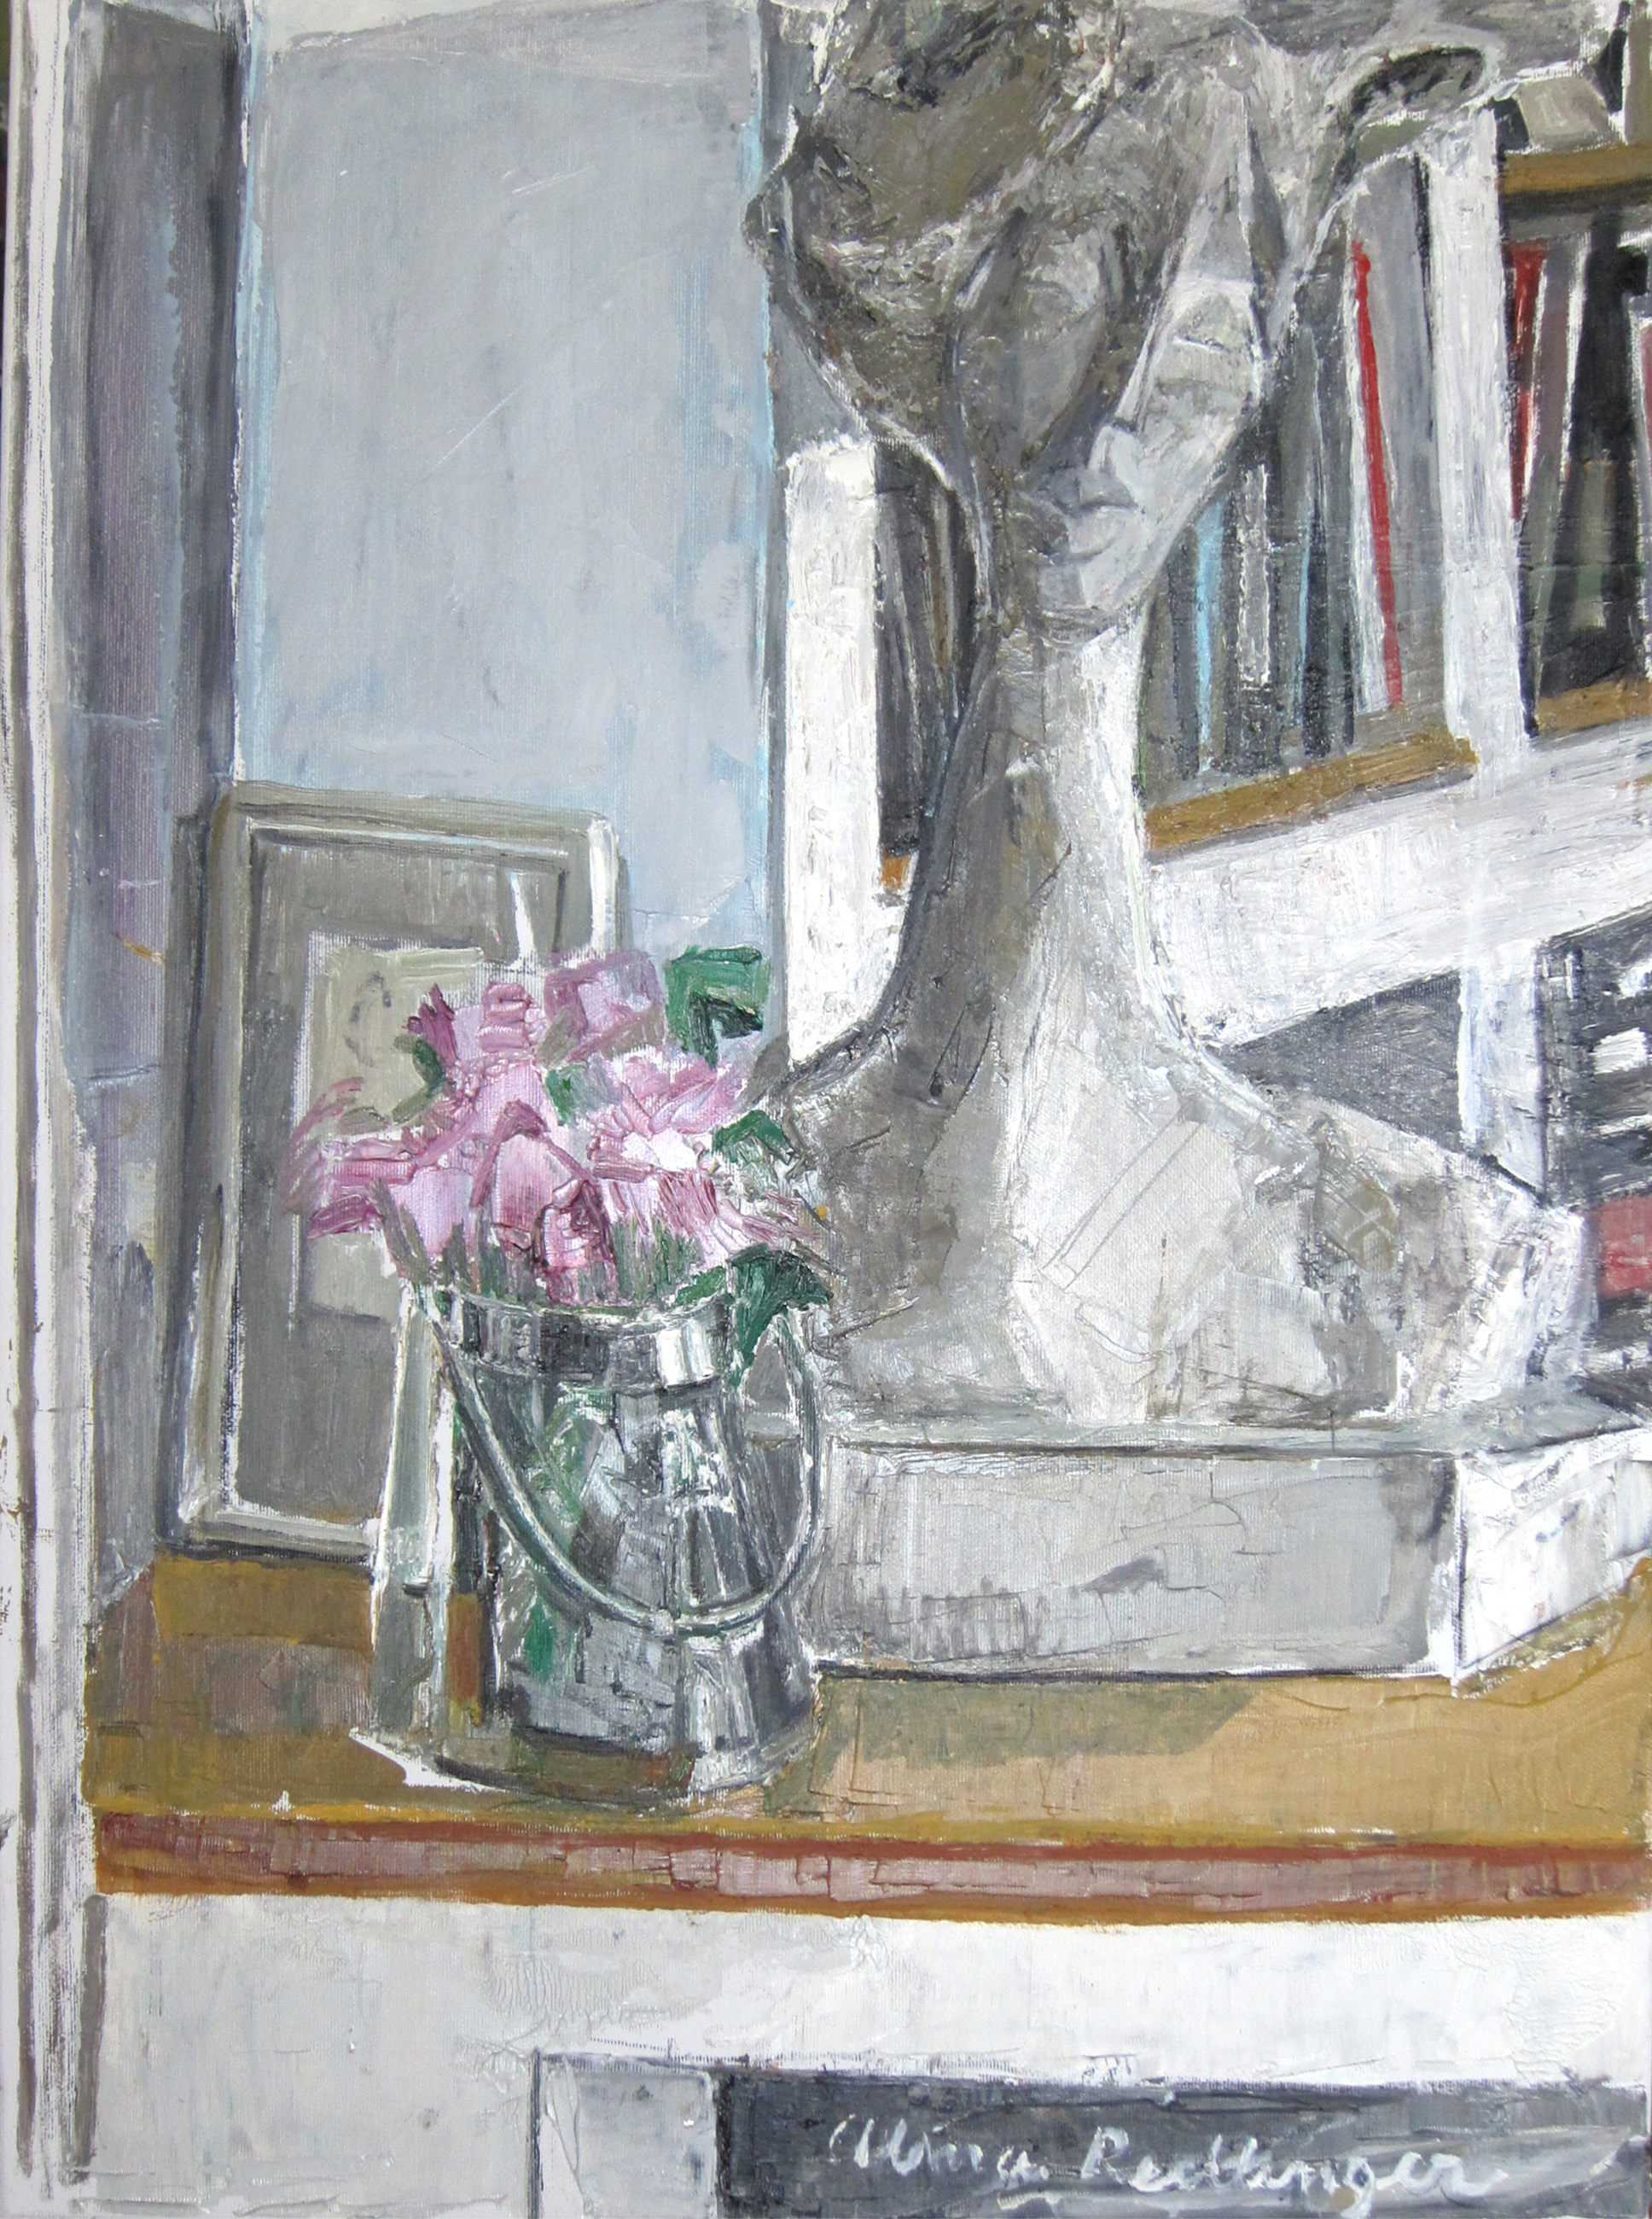 Lelia's sculpture, 2012, oil/canvas, 65x50 cm